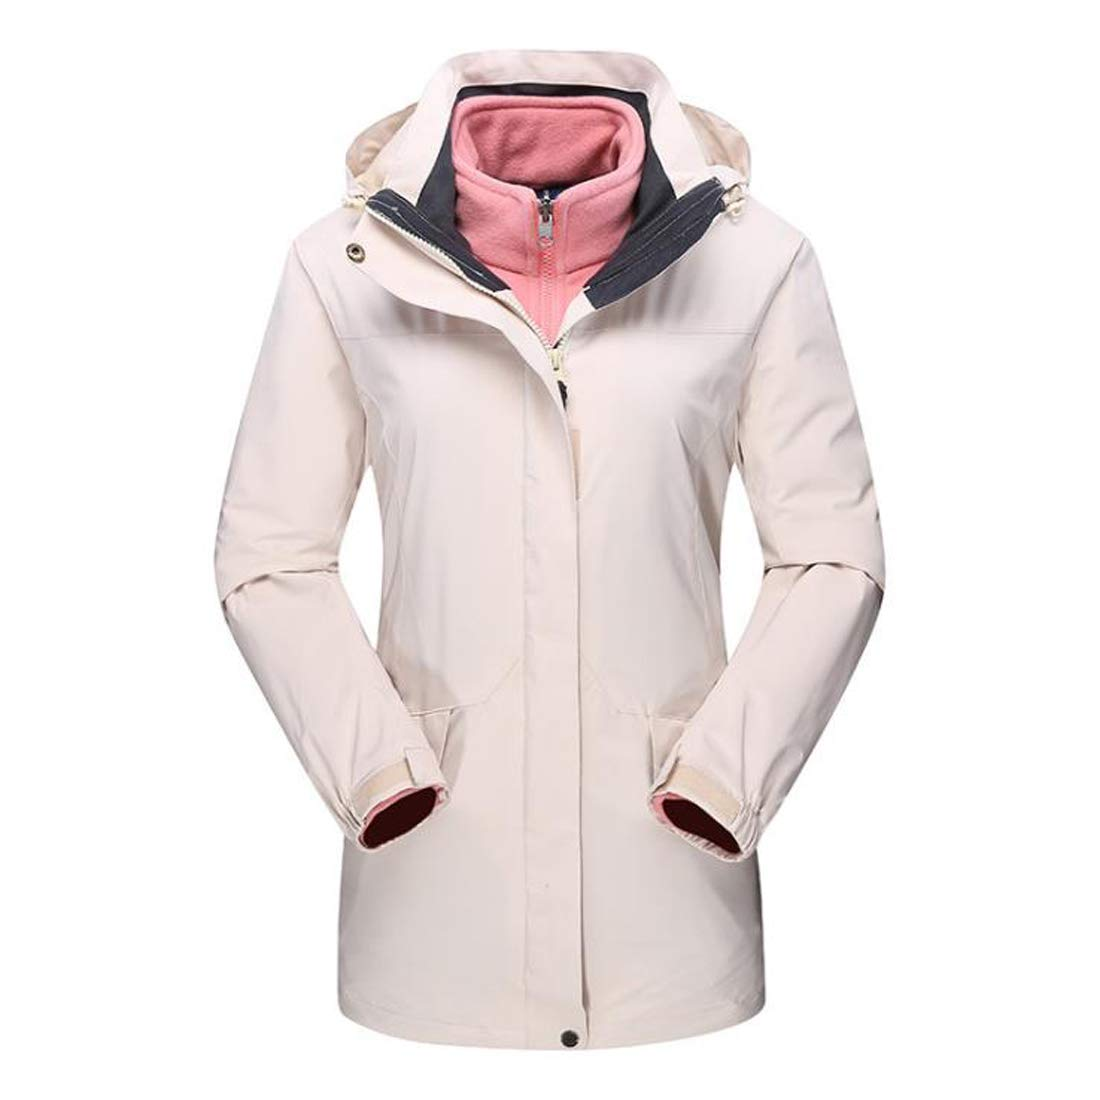 2 AUSWIEI Outdoor Ladies' Jacket, TwoPiece Long Section, Warm Winter Warm Padded Trench Coat (color   01, Size   XXL)